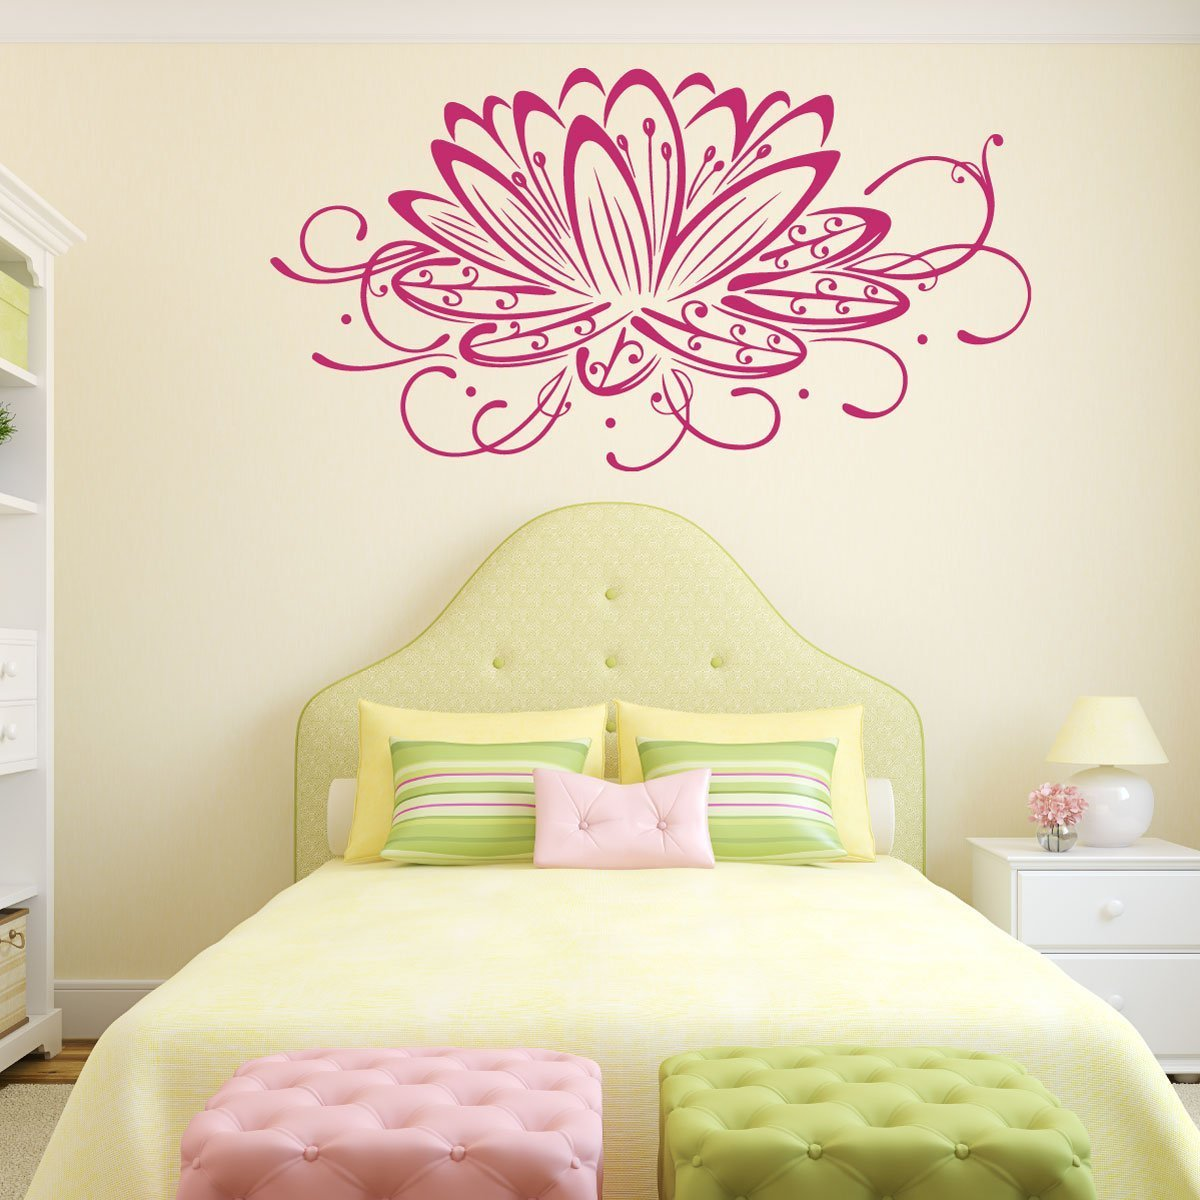 Dorable Pink Zebra Wall Decor Crest - Wall Art Collections ...